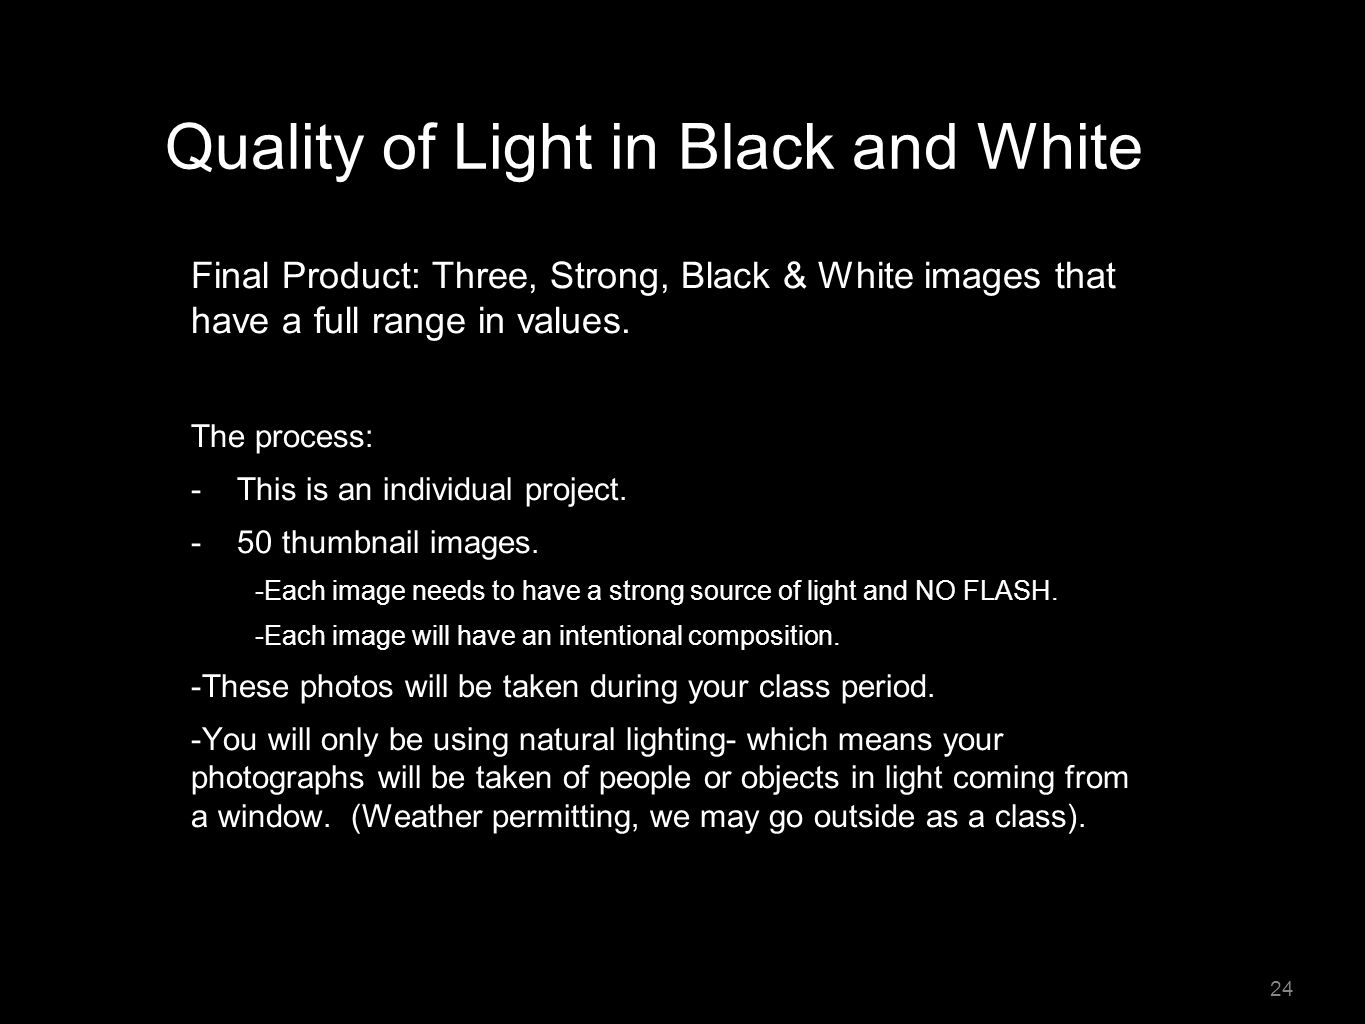 Quality of Light in Black and White